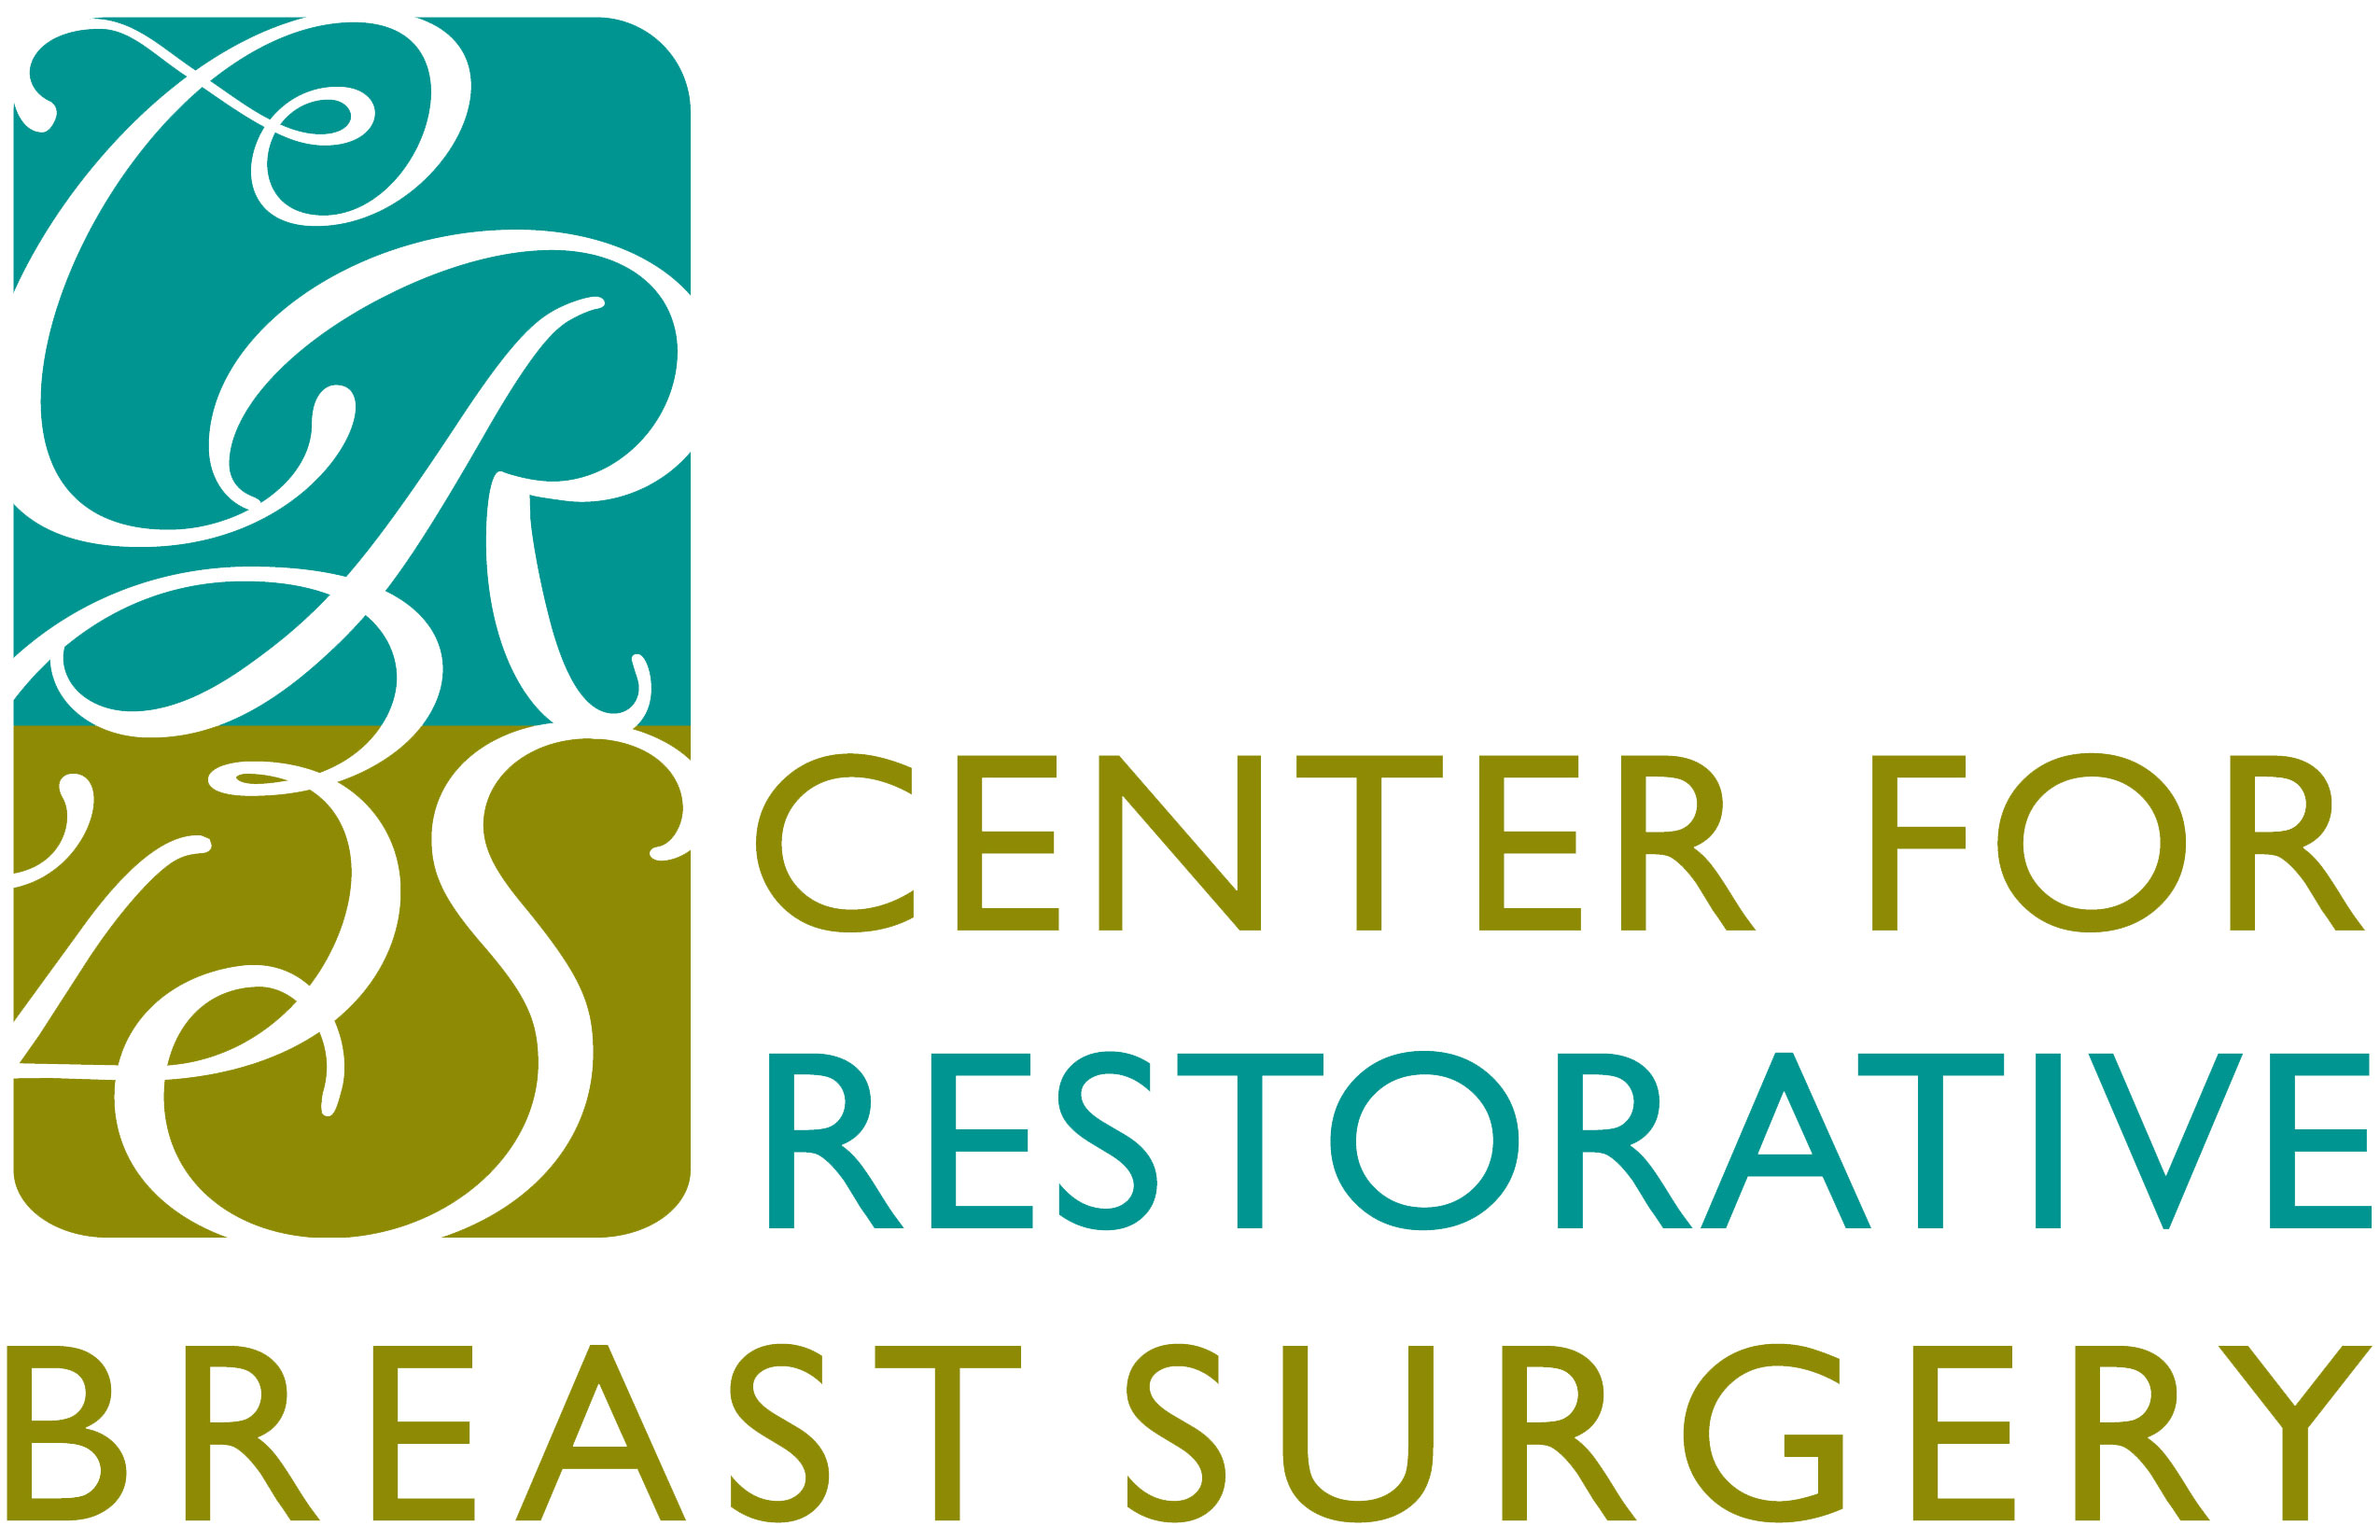 breast reconstruction surgeons of the center for restorative breast surgery named to prestigious. Black Bedroom Furniture Sets. Home Design Ideas